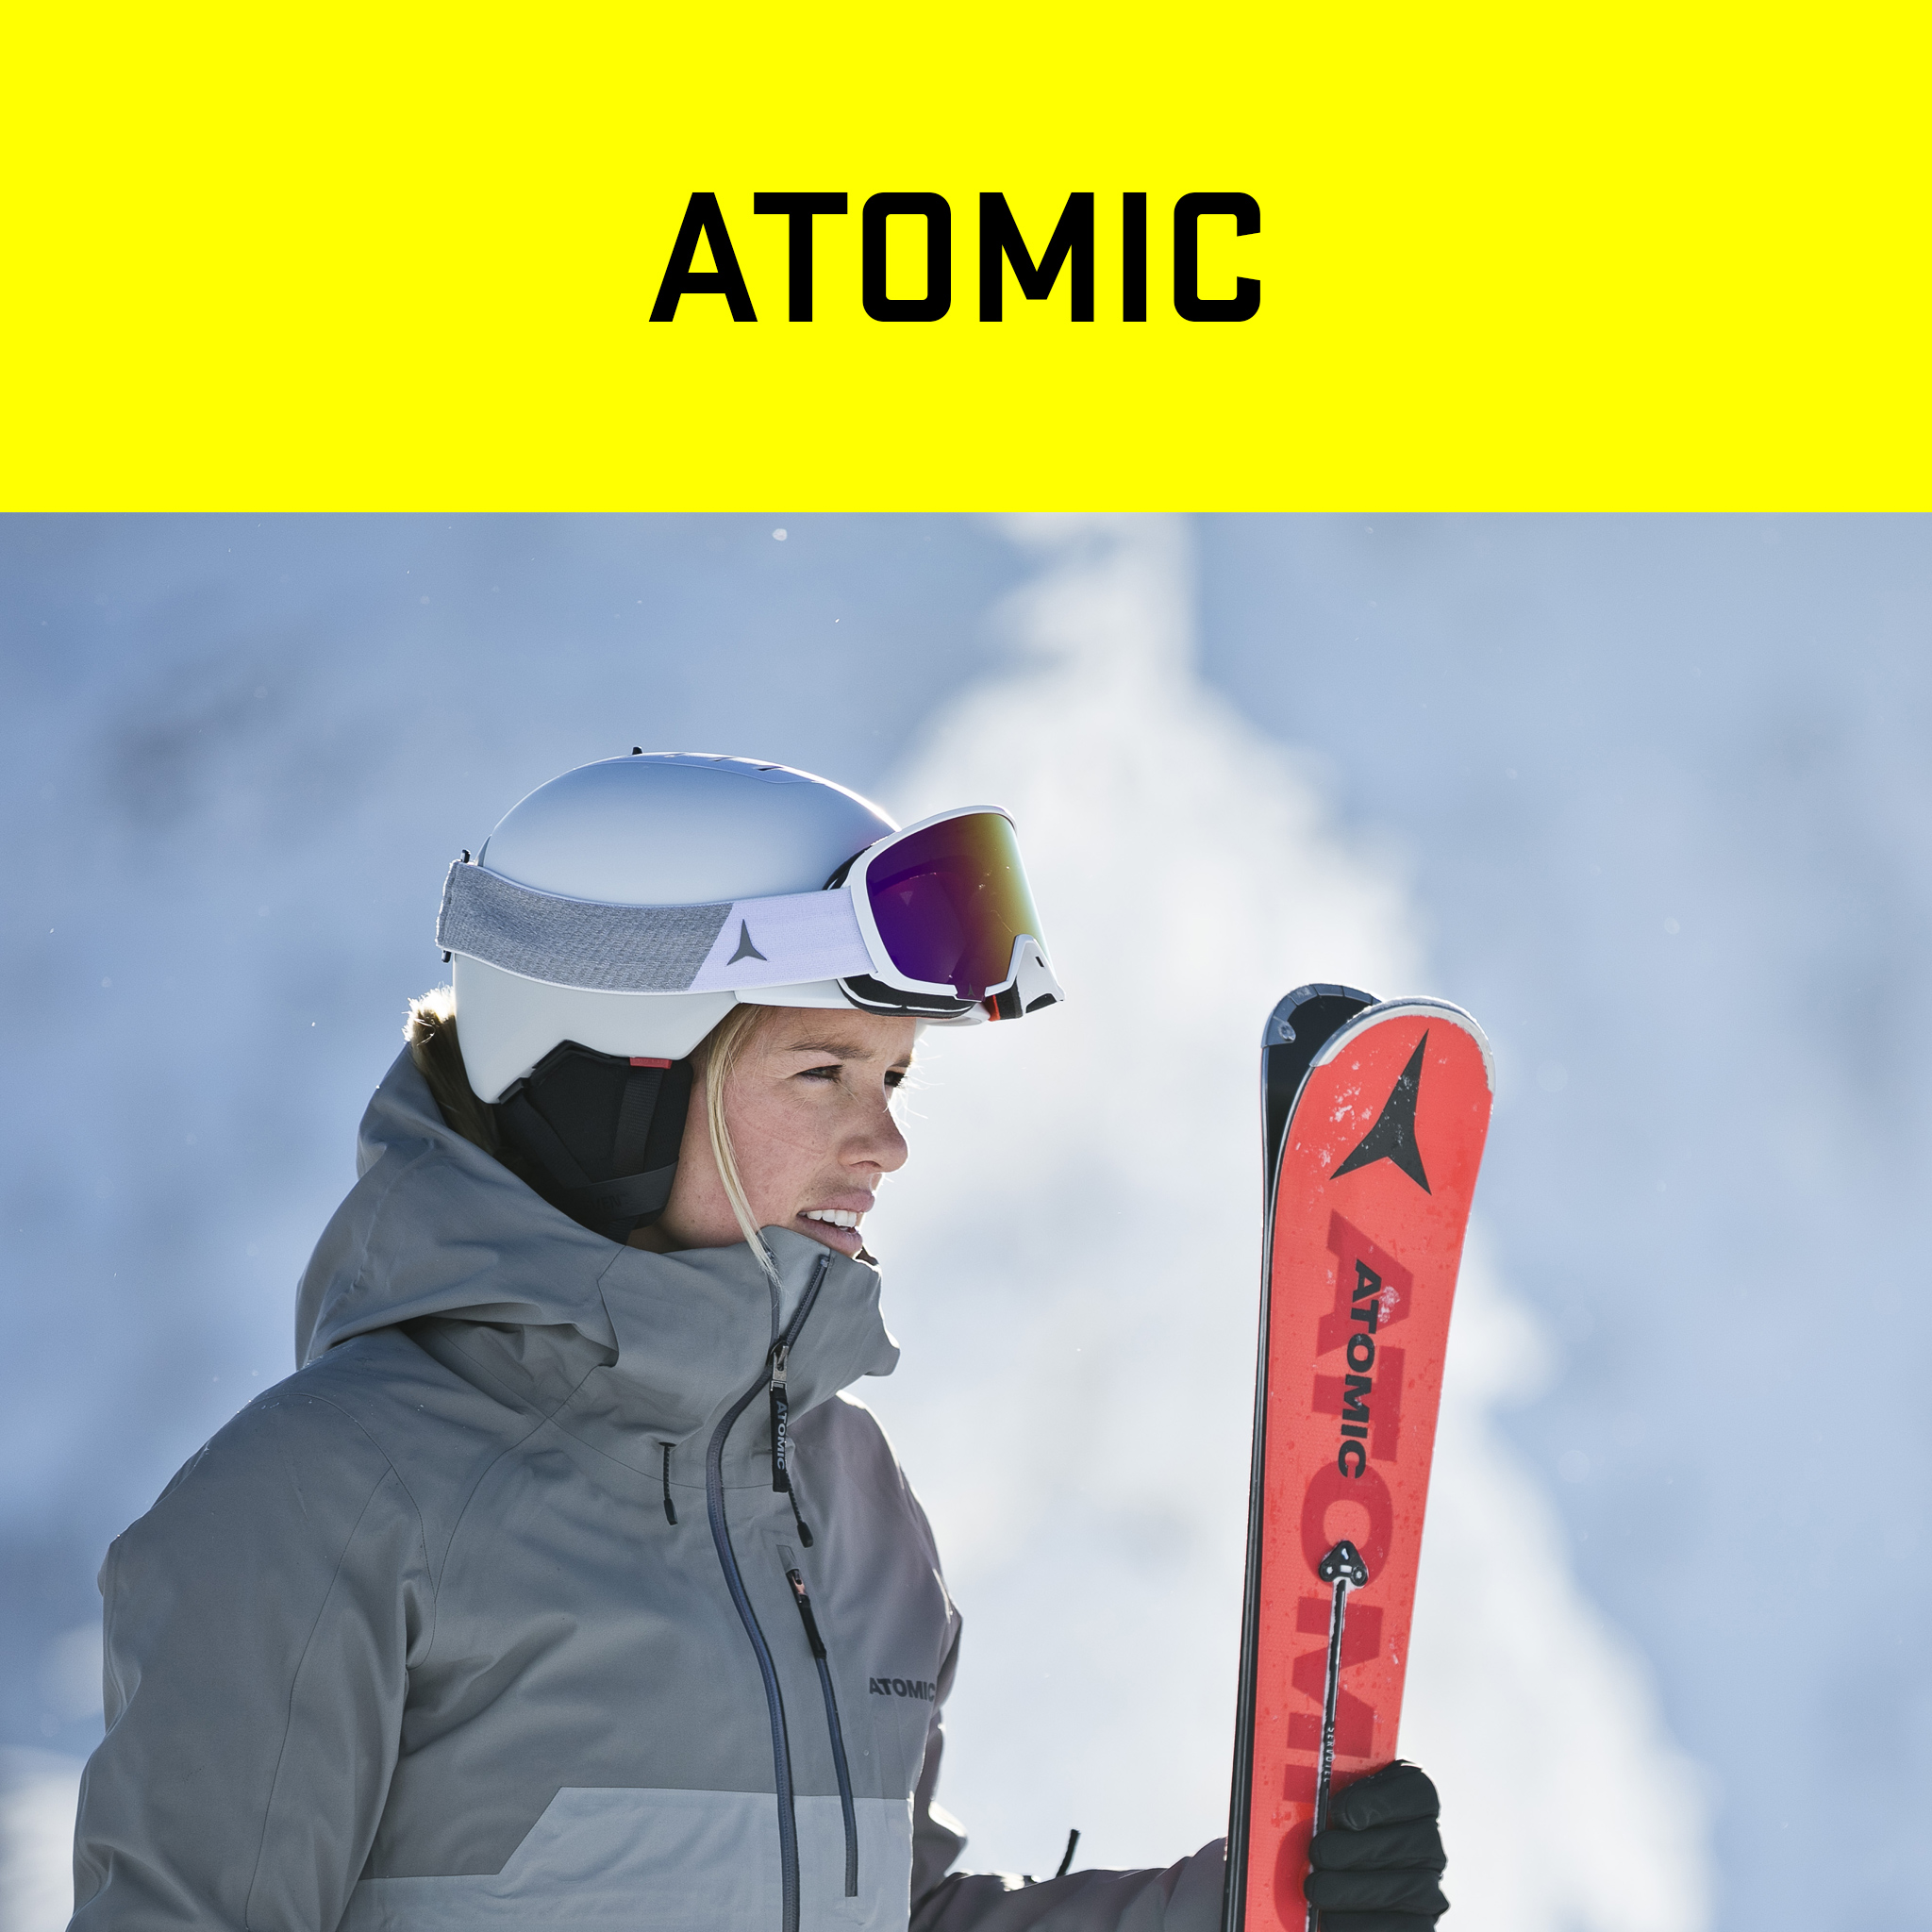 Klik hier voor alle Atomic beginner skis